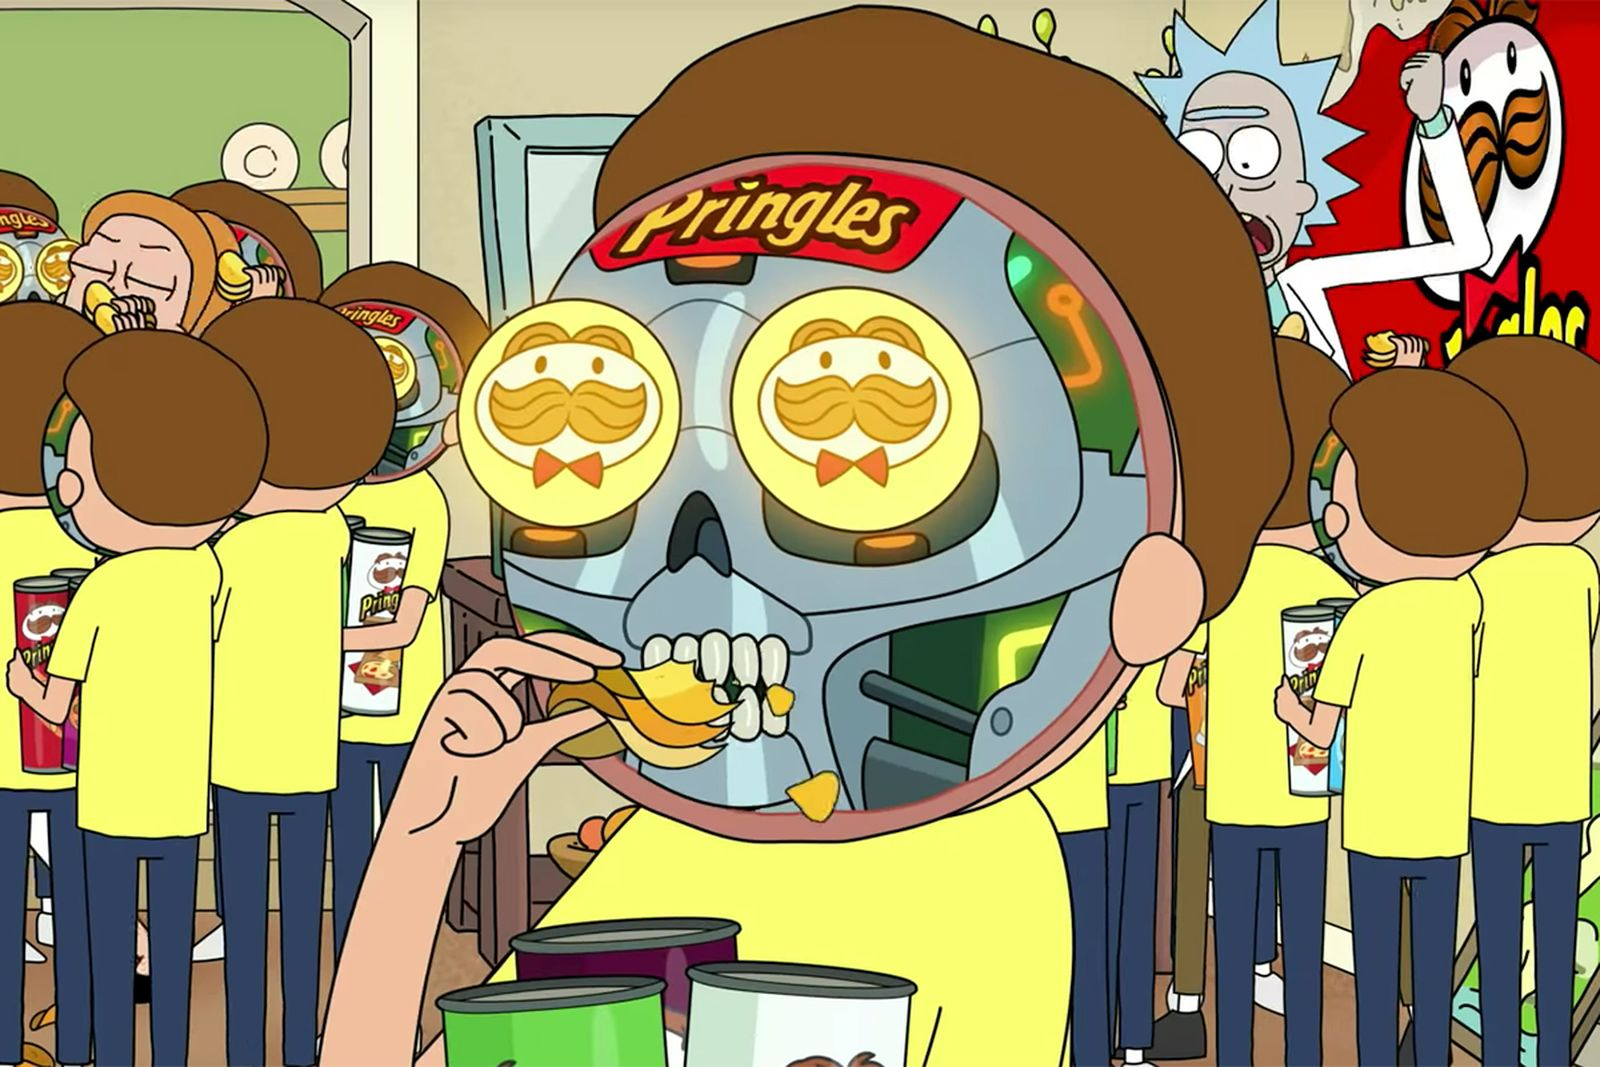 rick-and-morty-sueprbowl-1